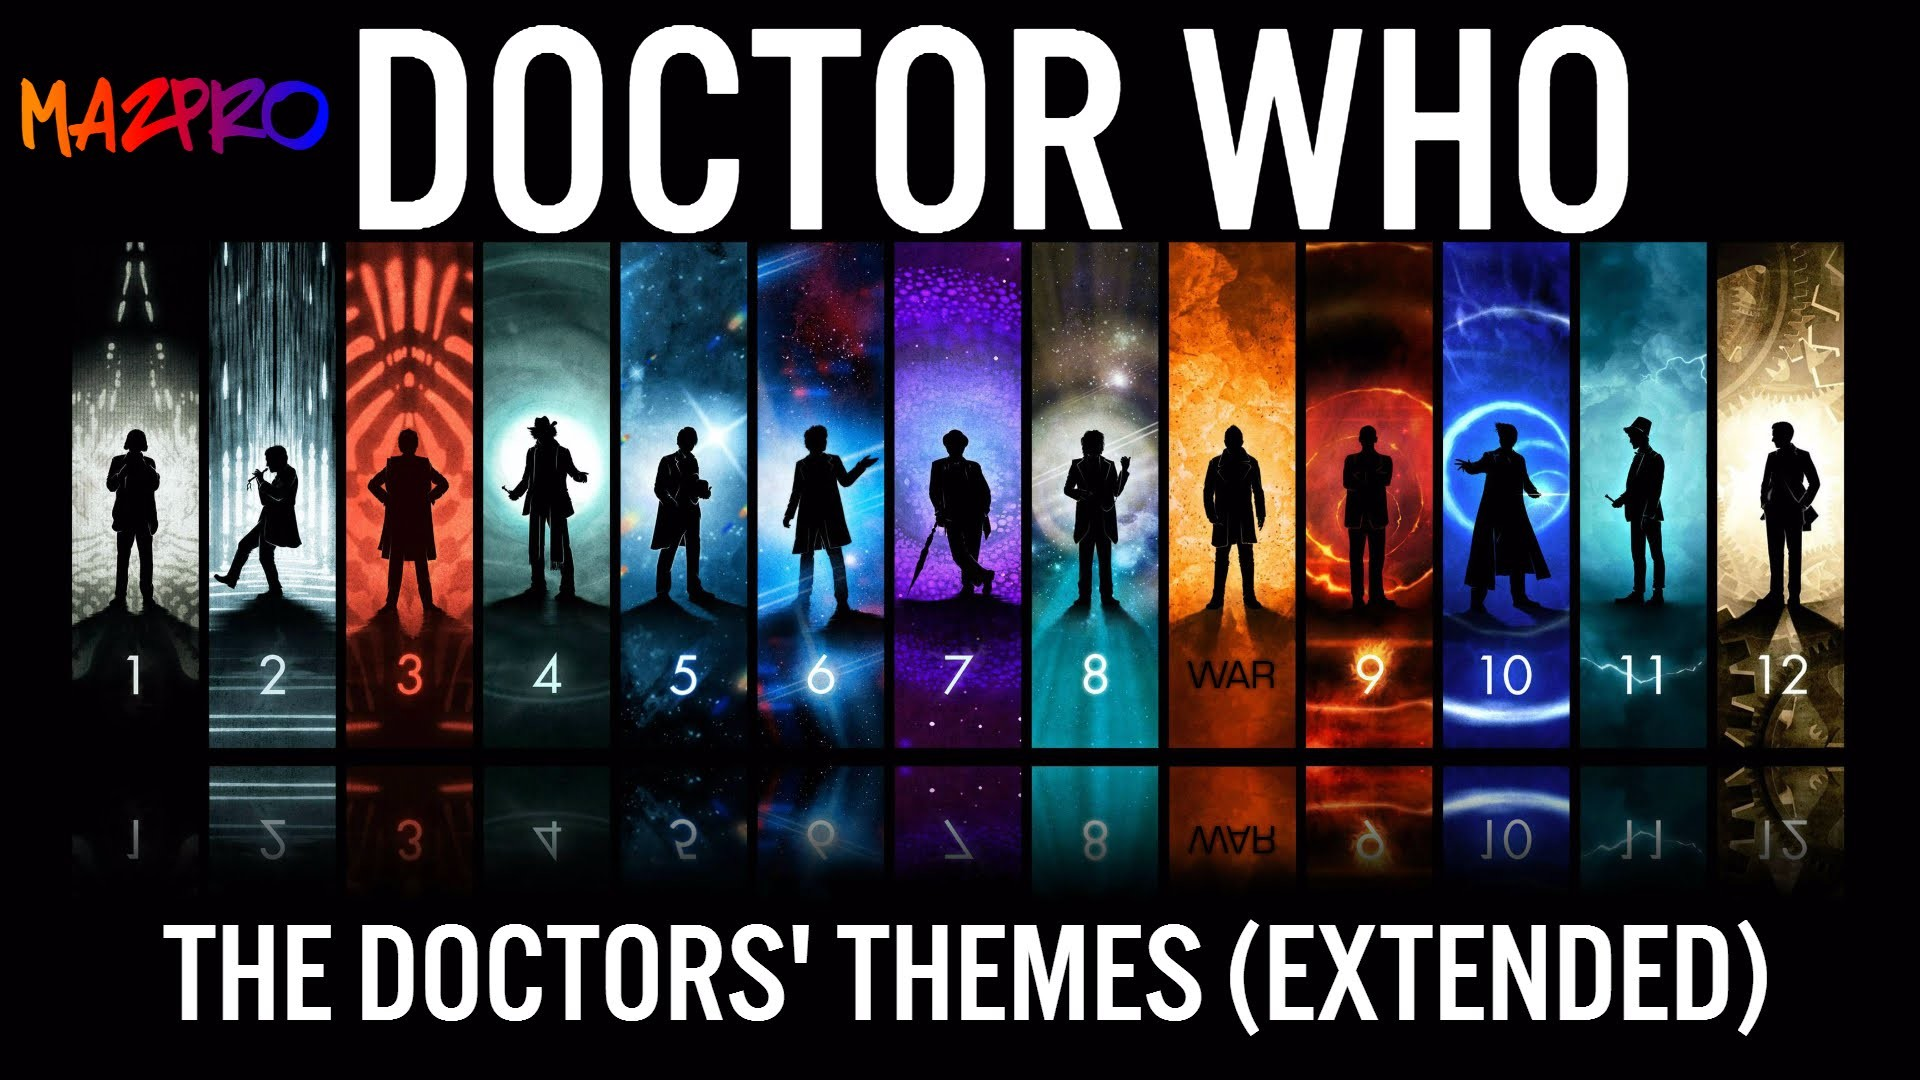 Doctor Who: The Doctor's Themes: 2,3,4,7,8,9,10,11,12, War (EXTENDED) –  YouTube